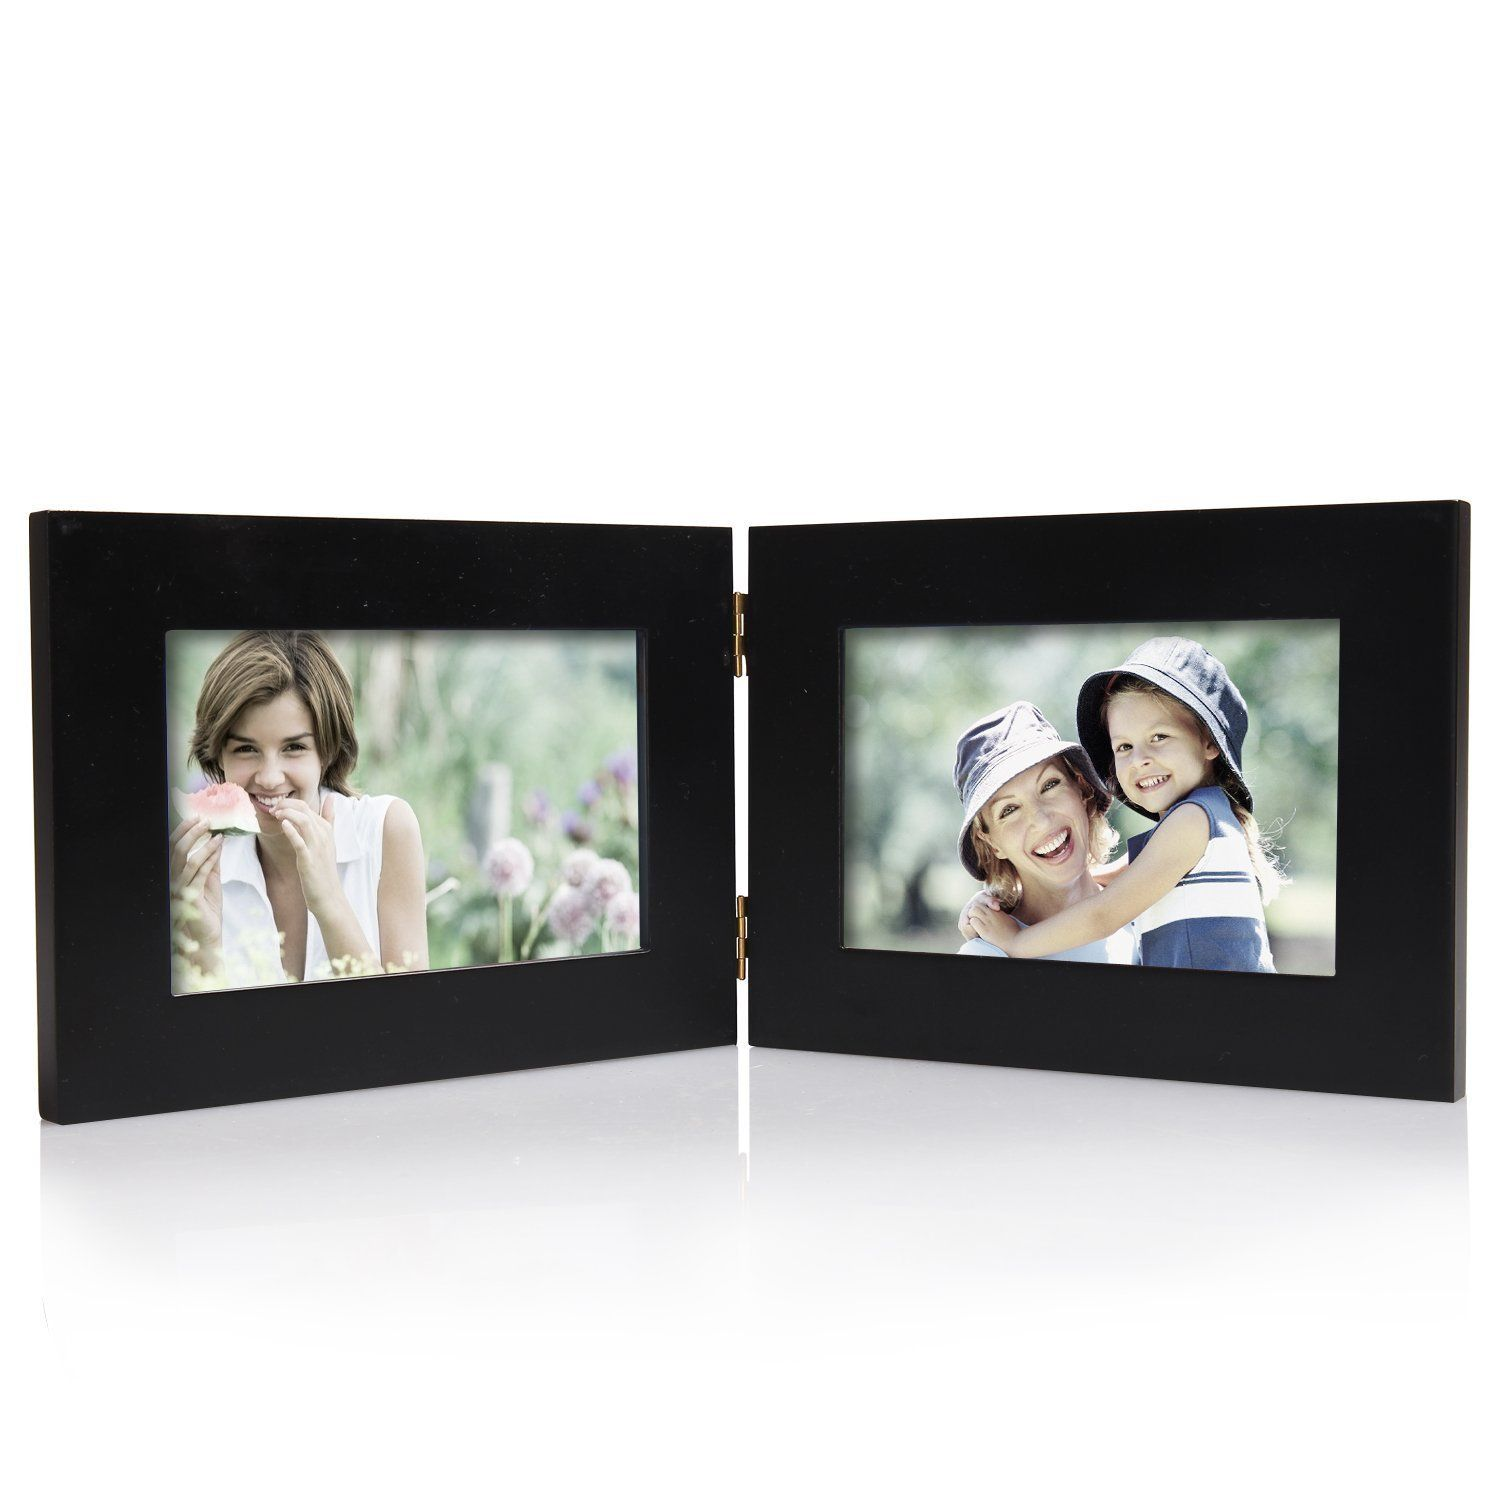 Adeco Black Wood Hinged 2-opening Table Top 4x6 Picture Frame (black ...